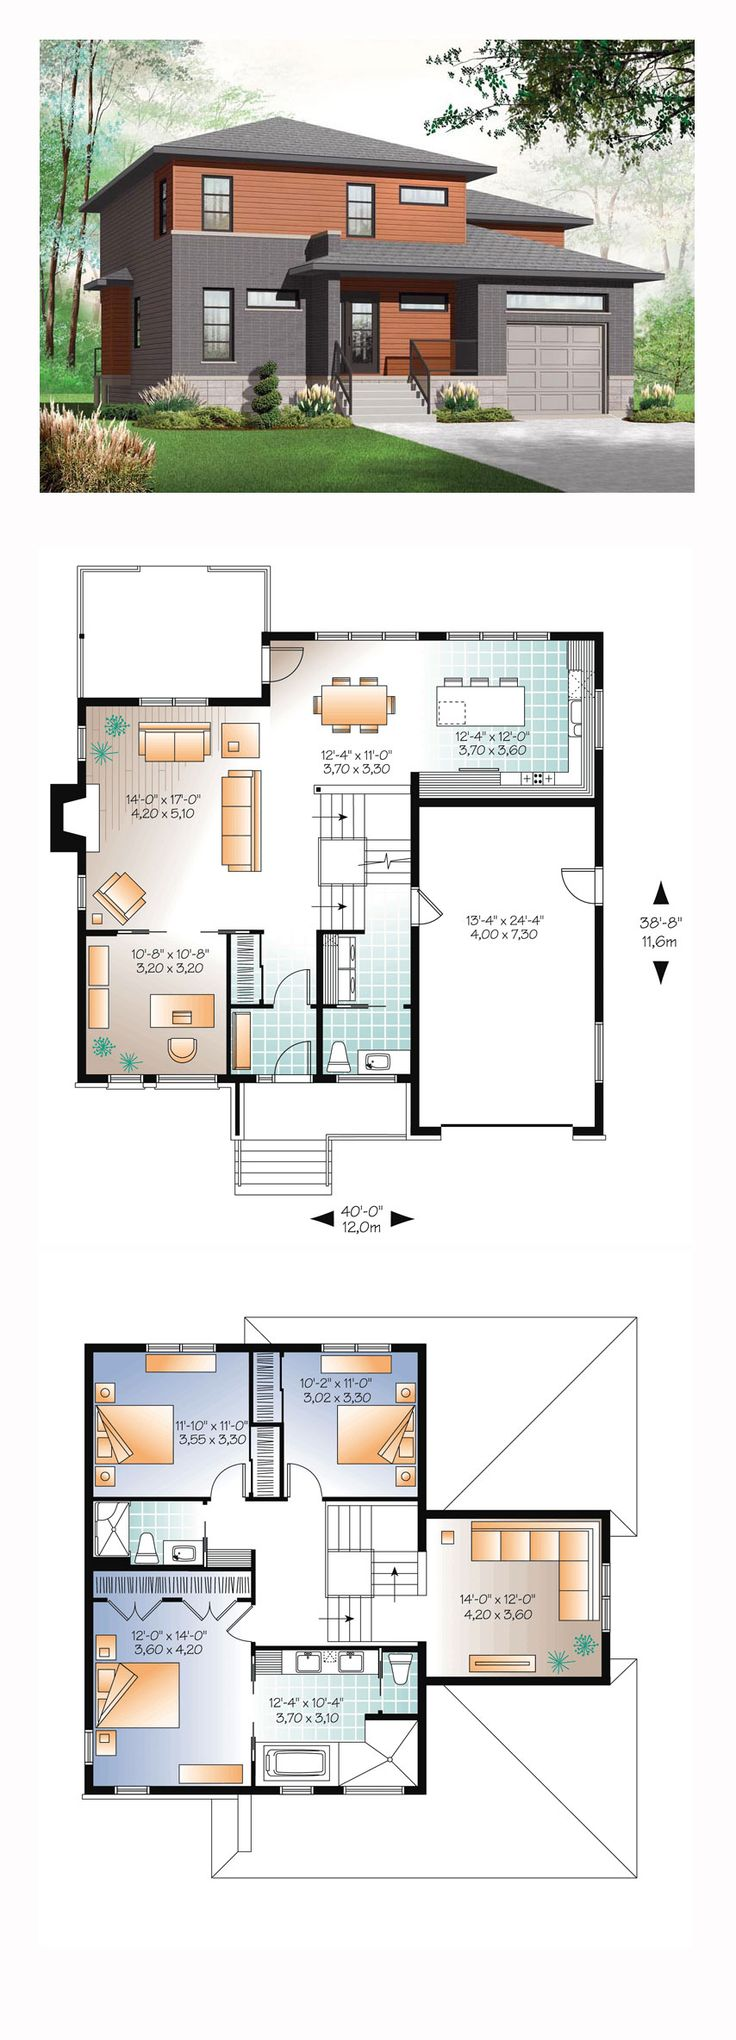 687 Best Plans For Apartments Houses Images On Pinterest